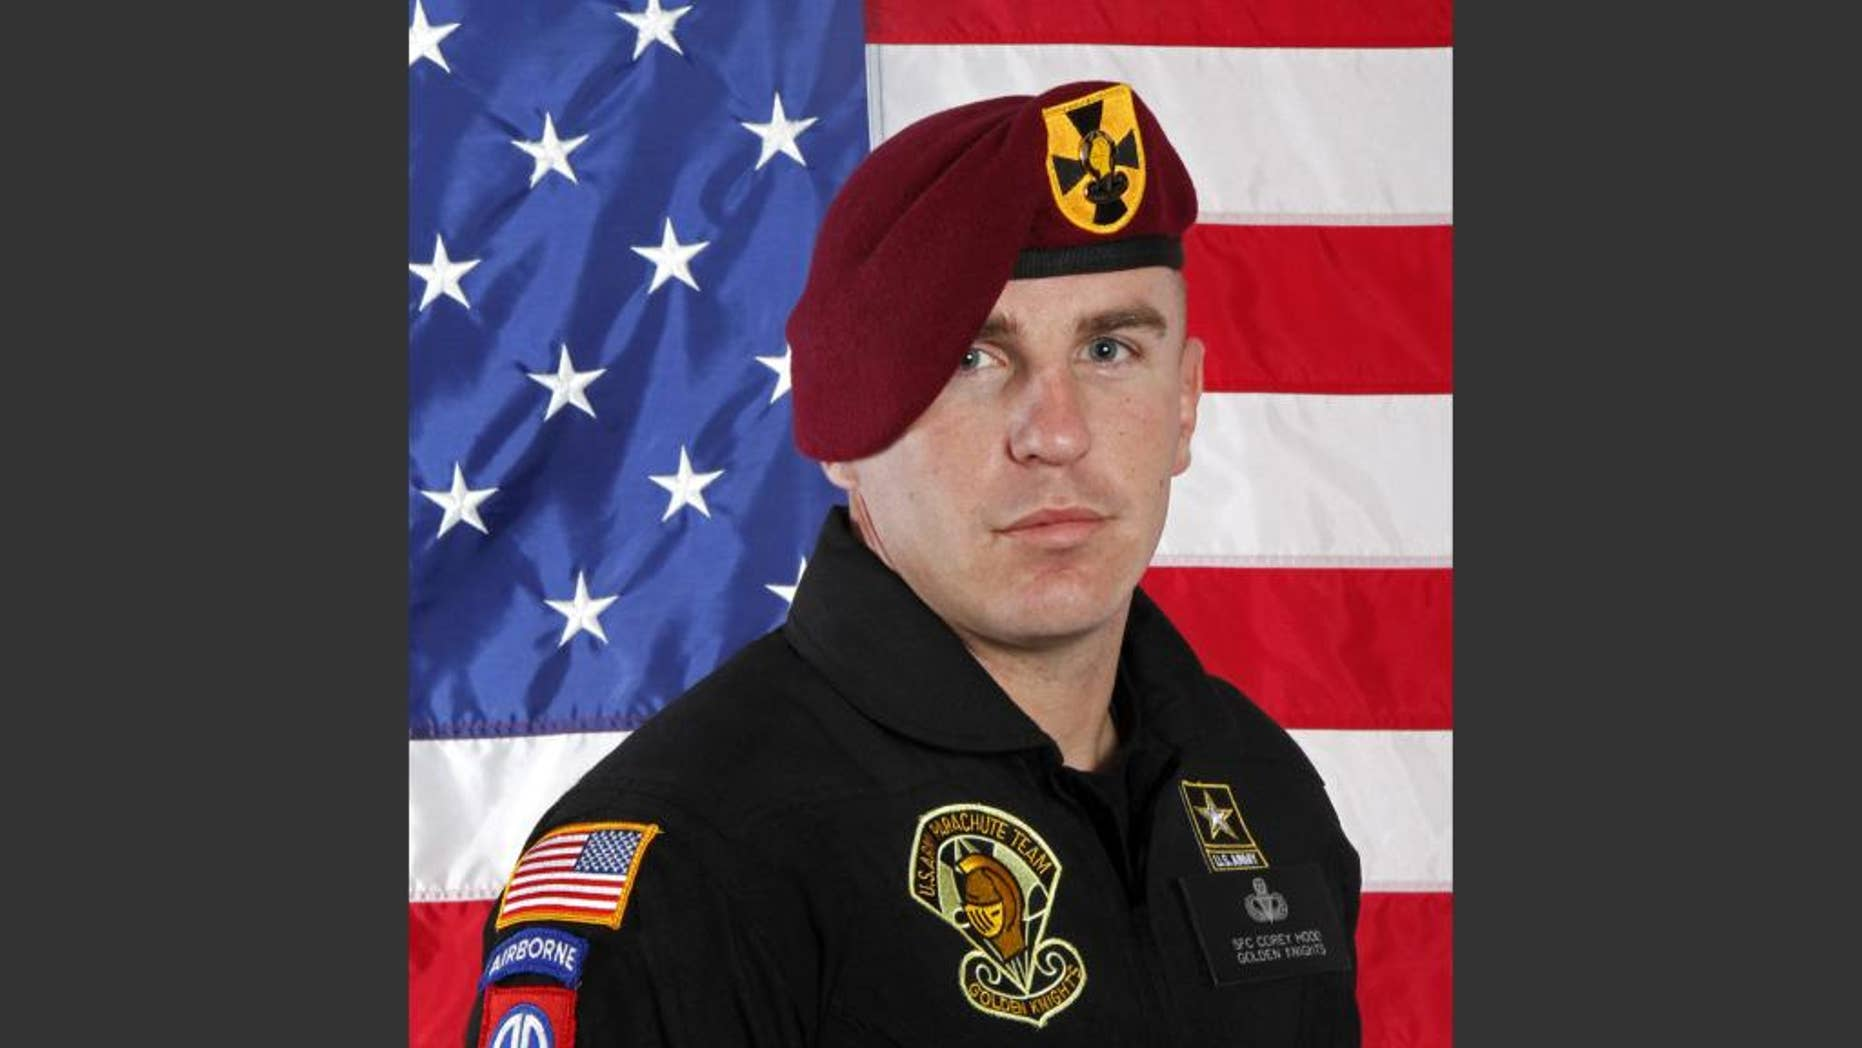 This undated photo provided by the U.S. Army shows Sgt. 1st Class Corey Hood. A parachutist the Army Golden Knights, Hood died Sunday after suffering severe injuries from an accident during a stunt on Saturday at the Chicago Air & Water Show, the Cook County medical examiner's office said. (U.S Army via AP)